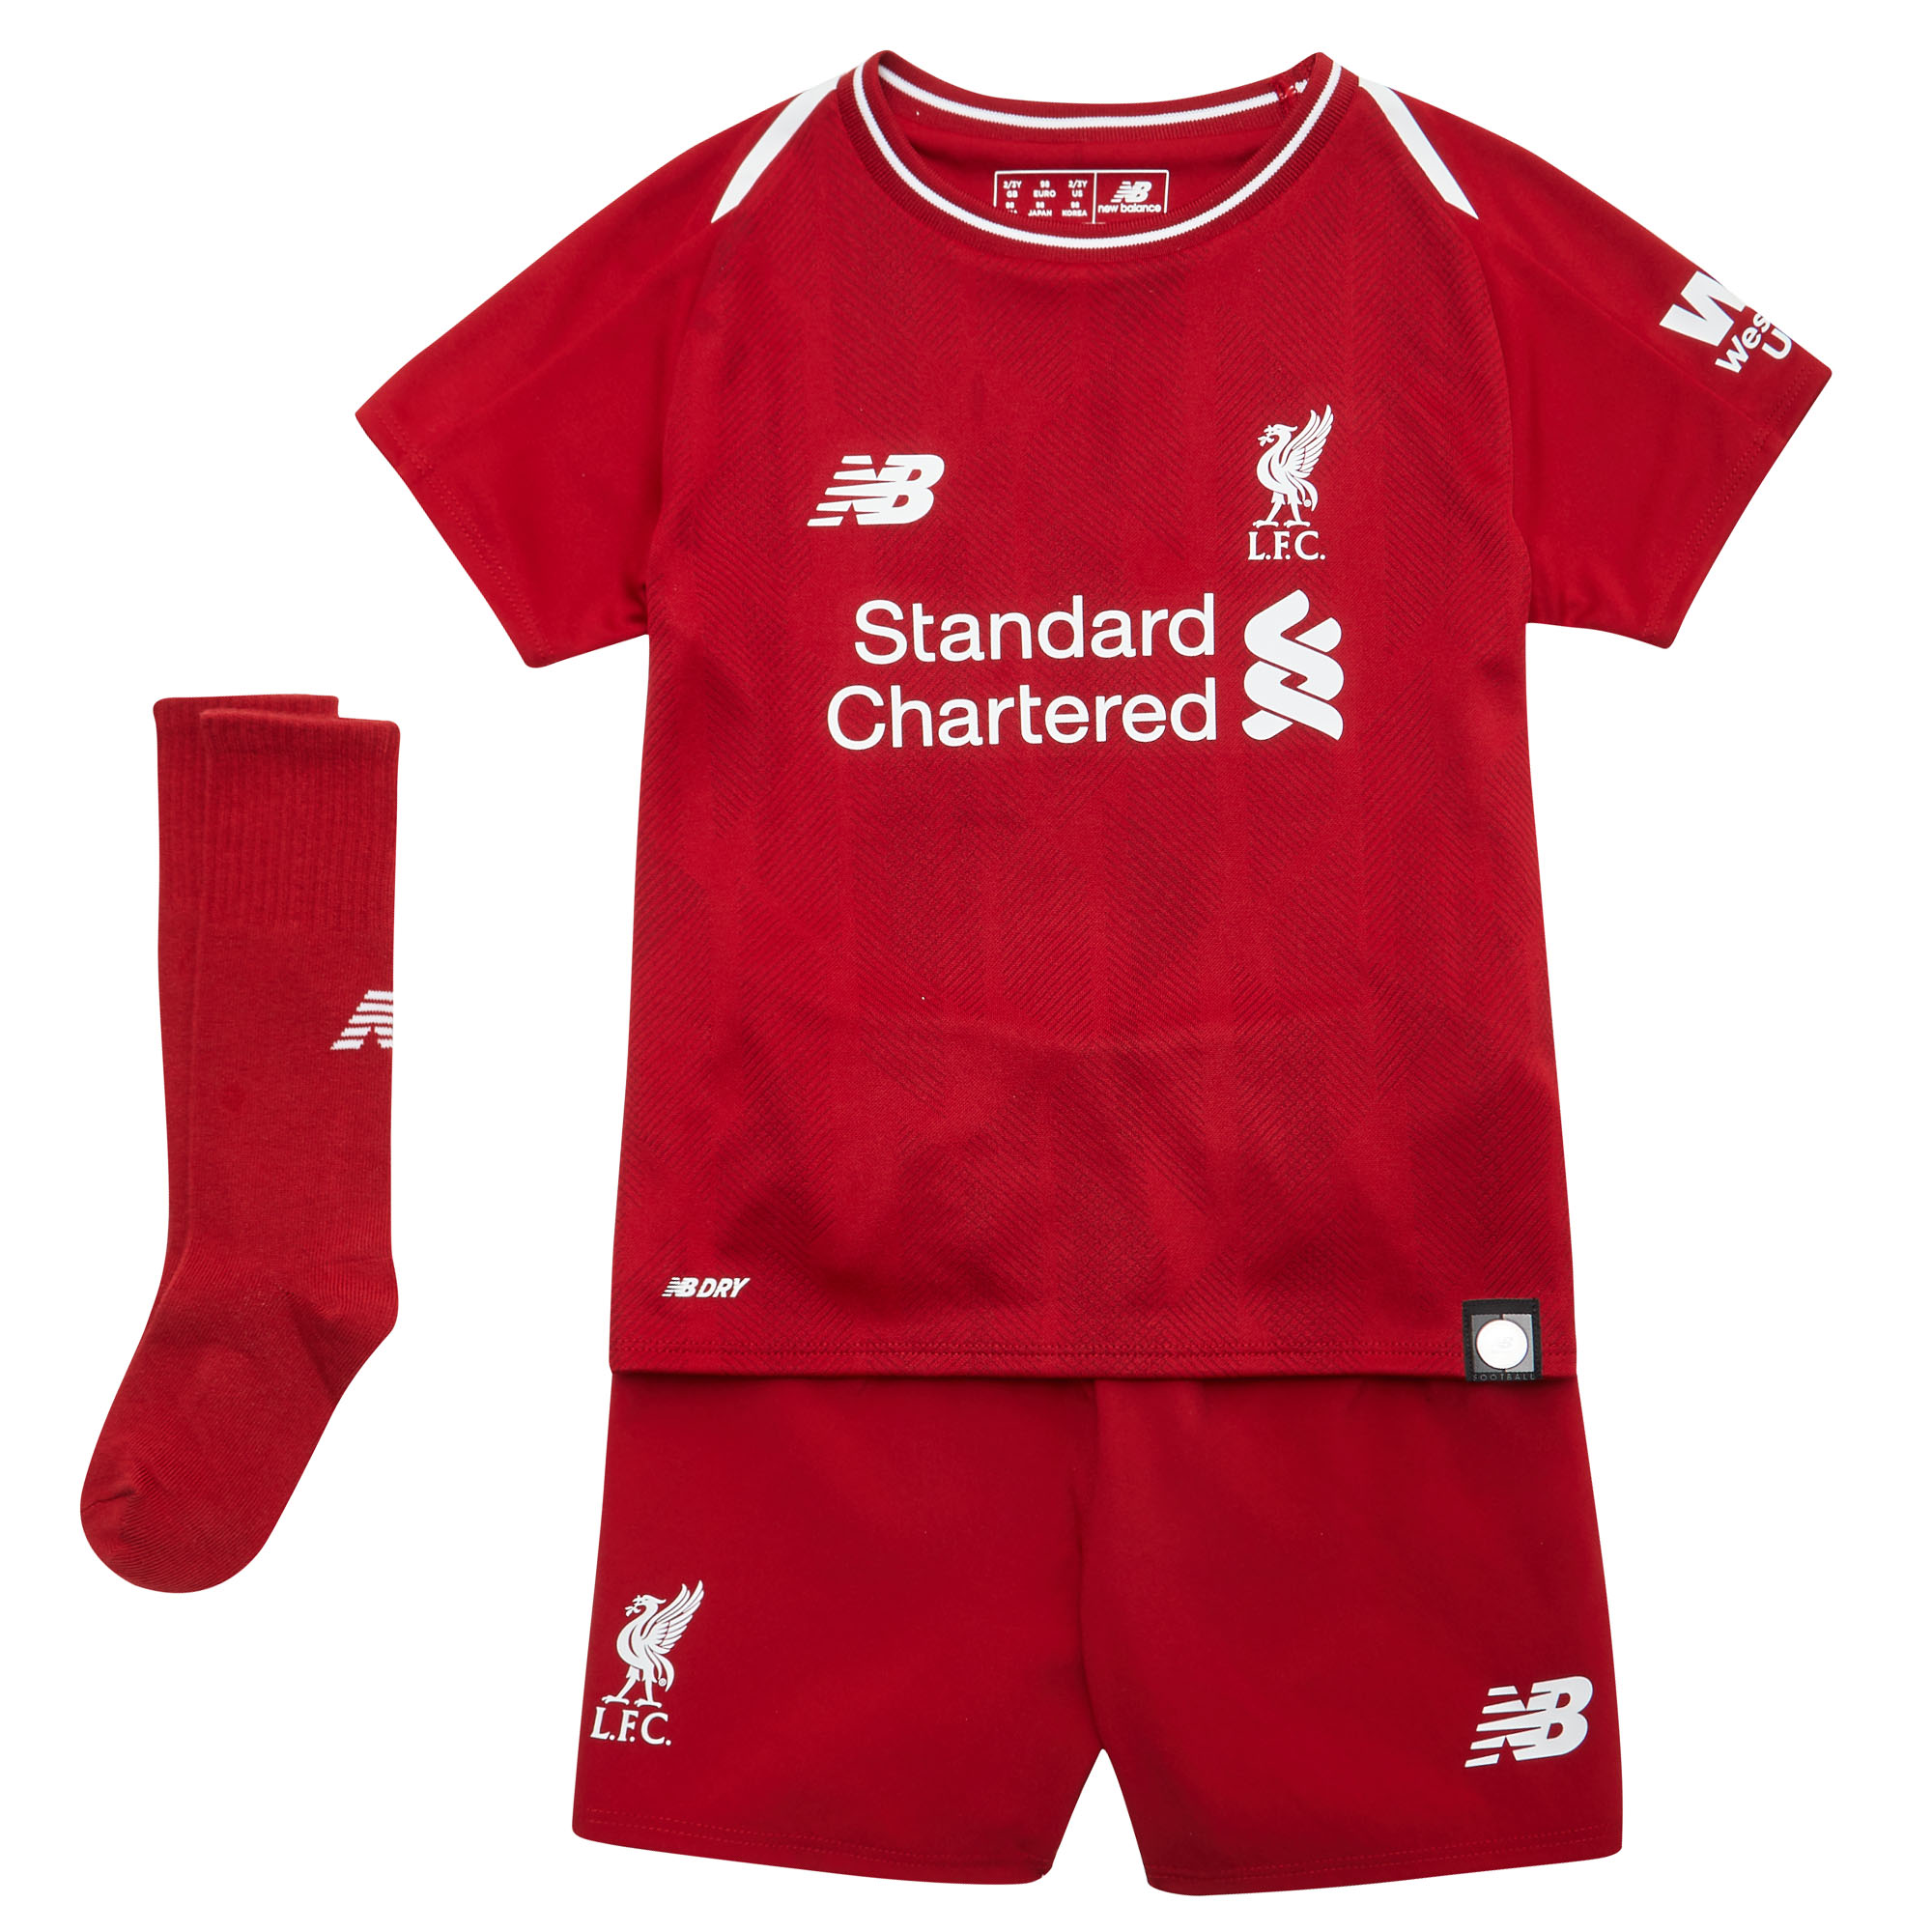 0fc49dfcf81 Details about New Balance Liverpool 2018 19 Kids Junior Infant Home  Football Kit Red